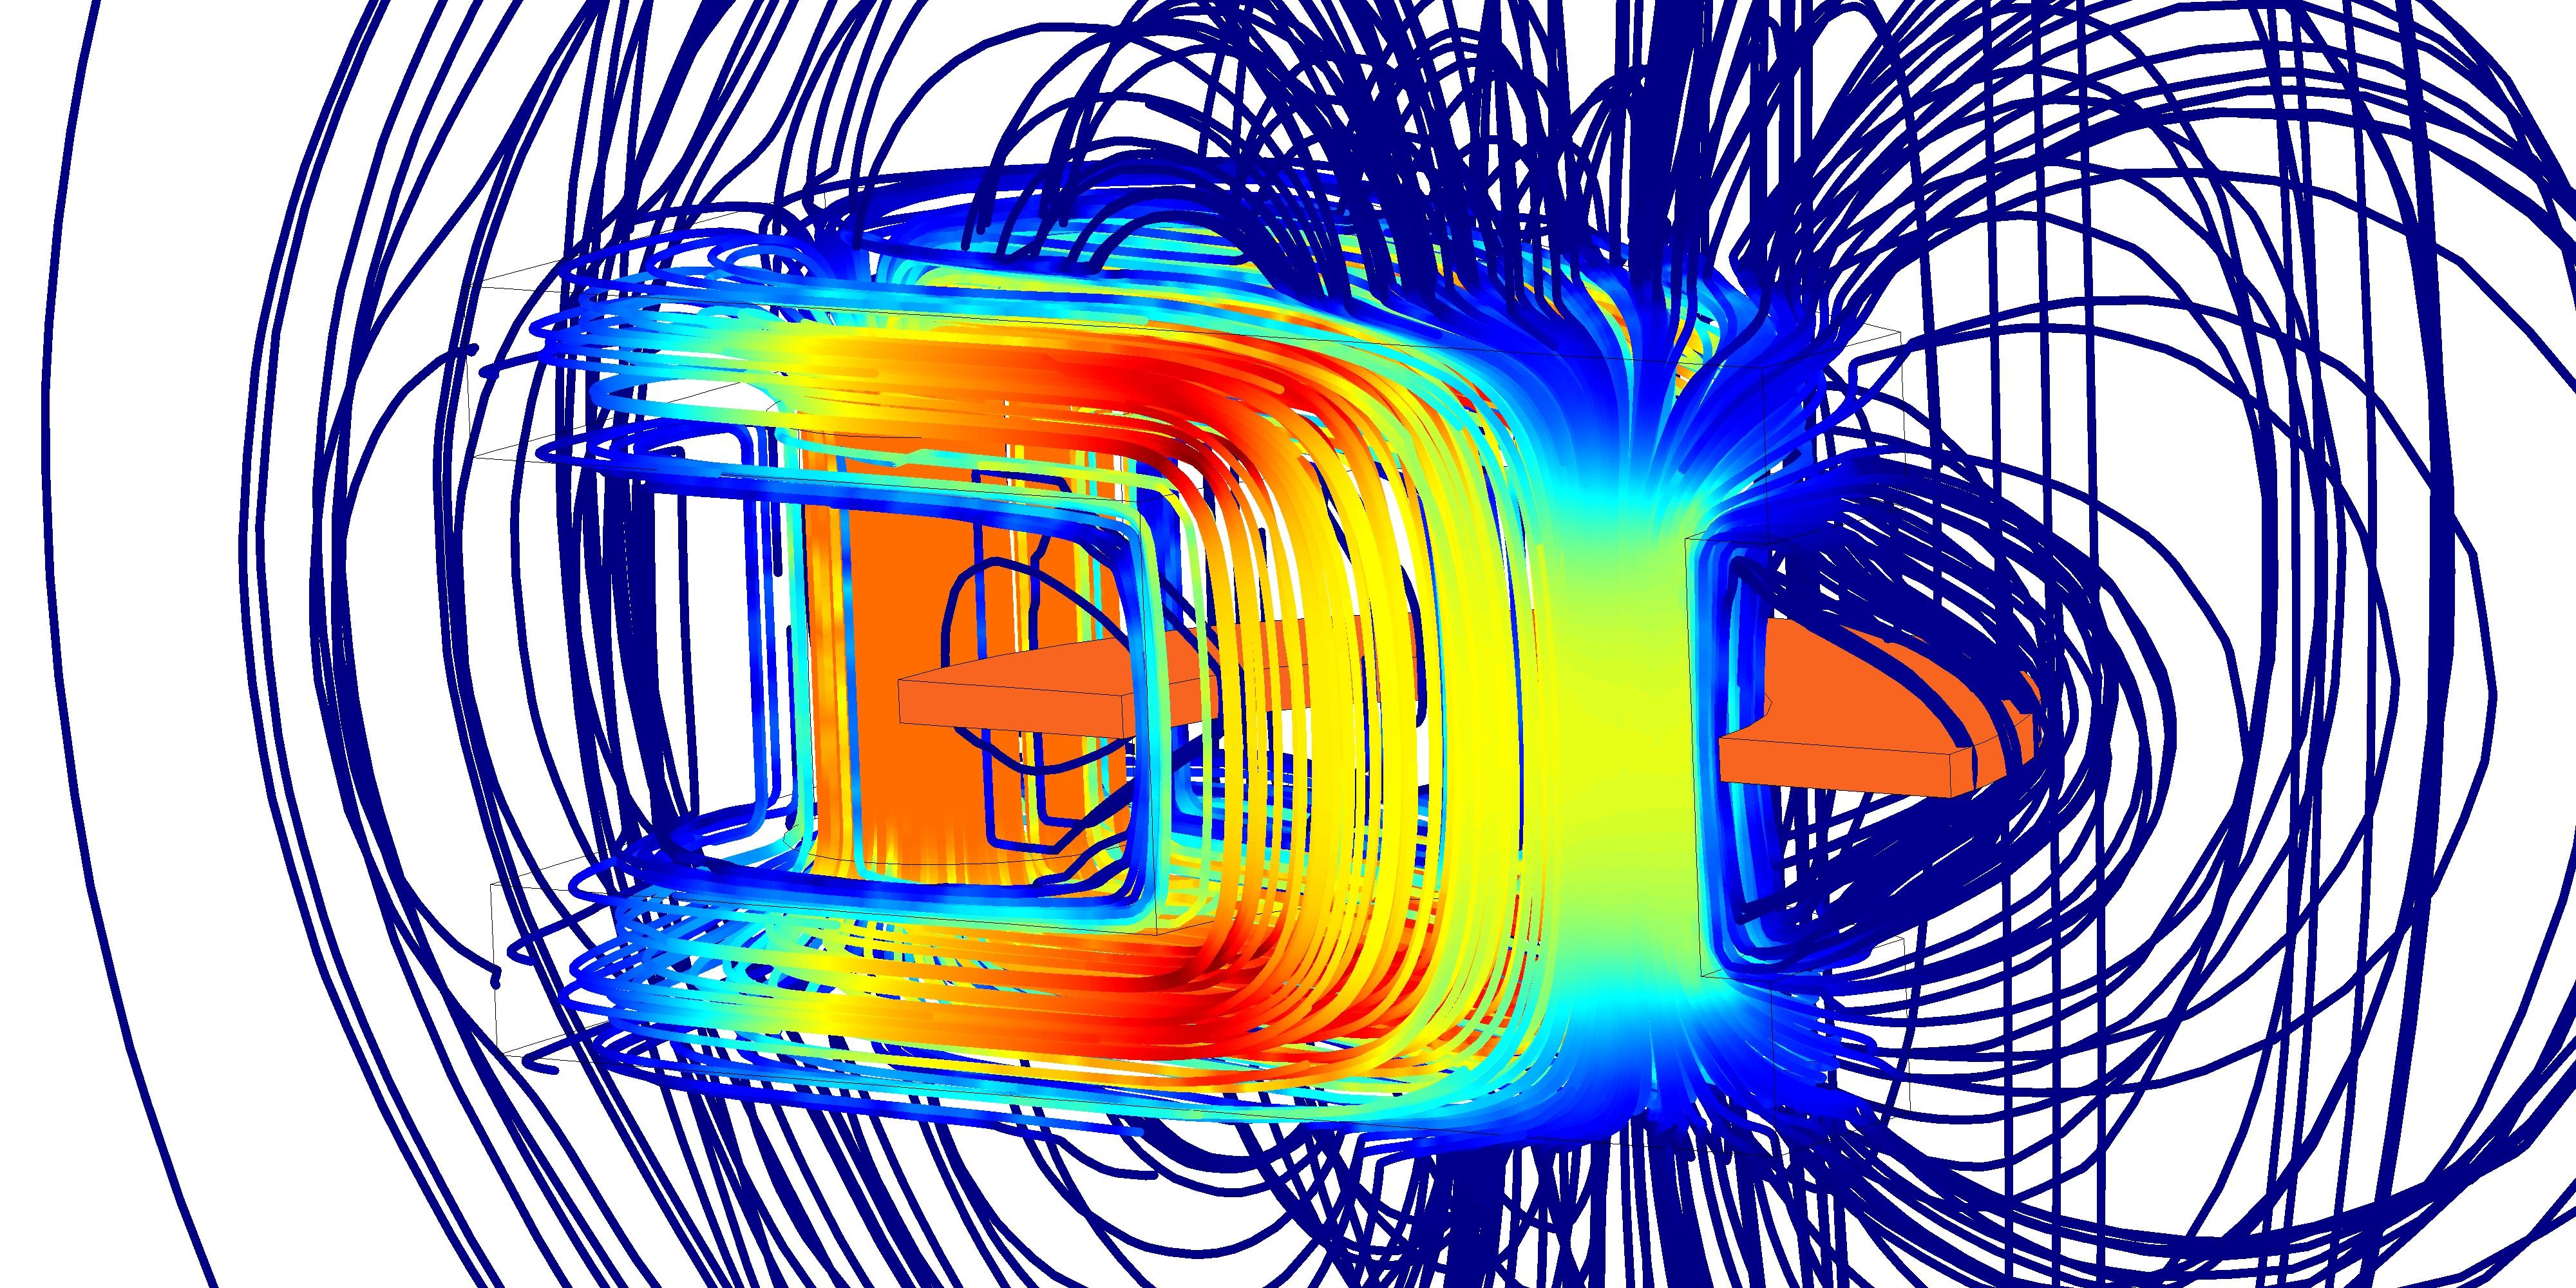 Alvelid Engineering's simulation results showing magnetic flux streamlines and magnitude around an inductor